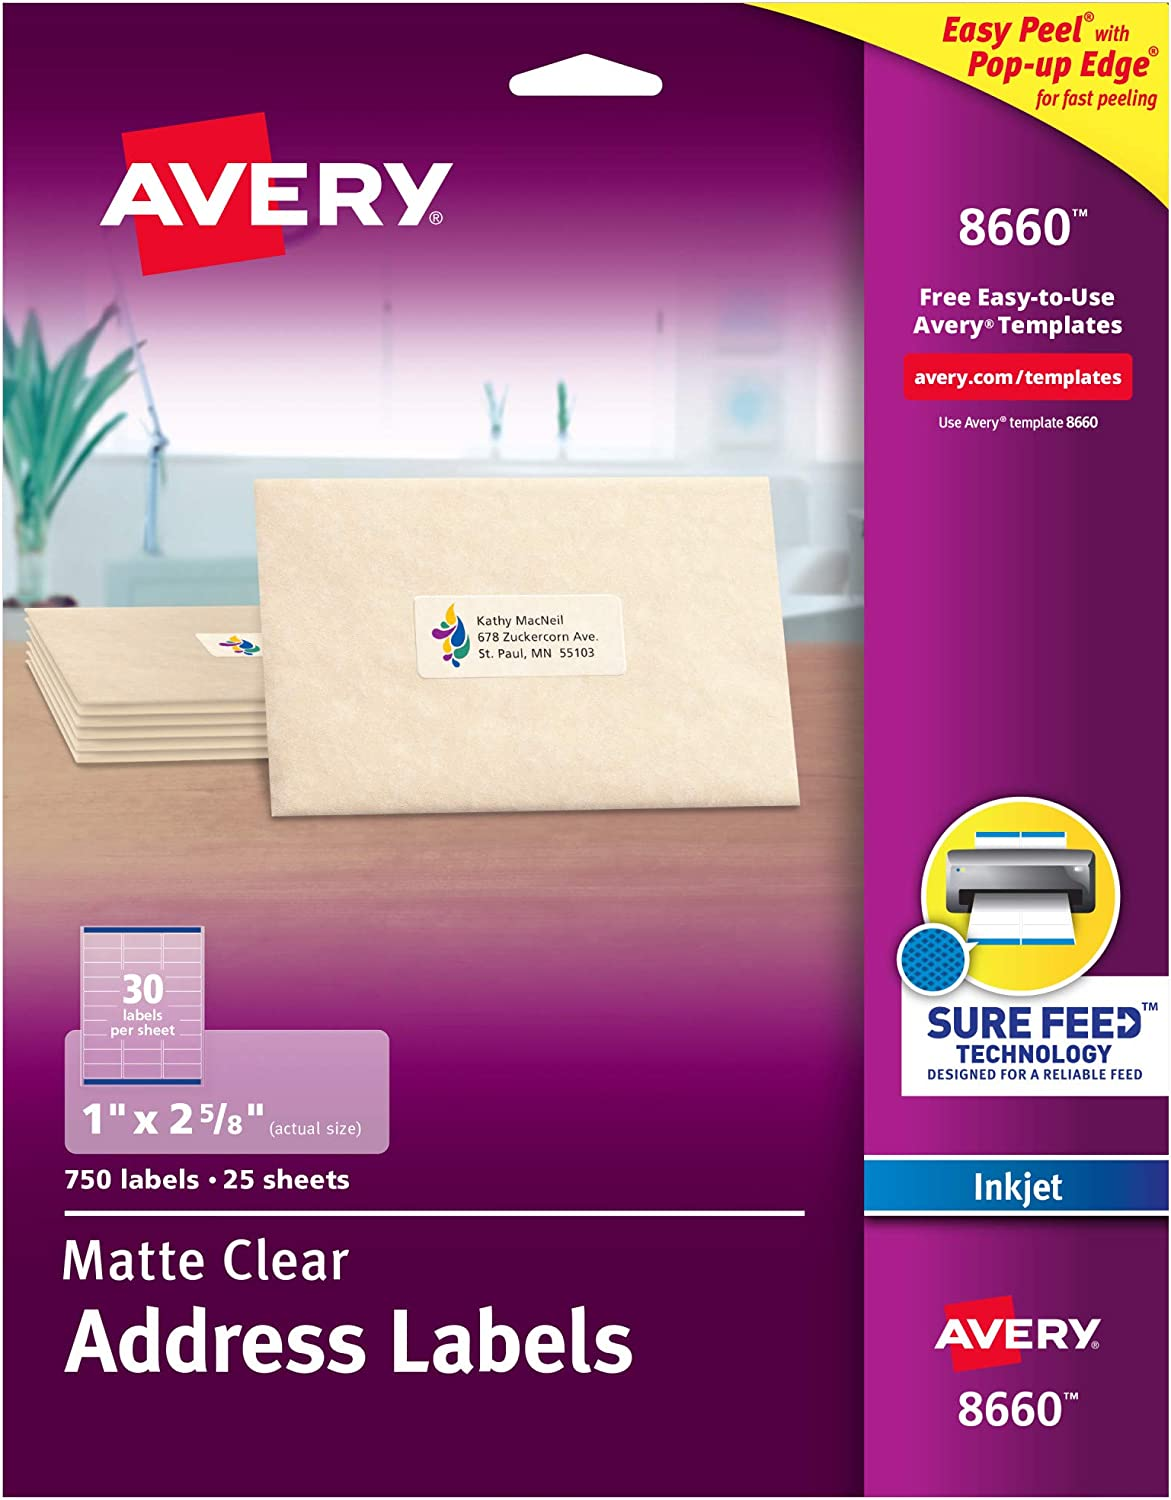 Avery Clear Address Labels for Inkjet Printers with Sure Feed, 1